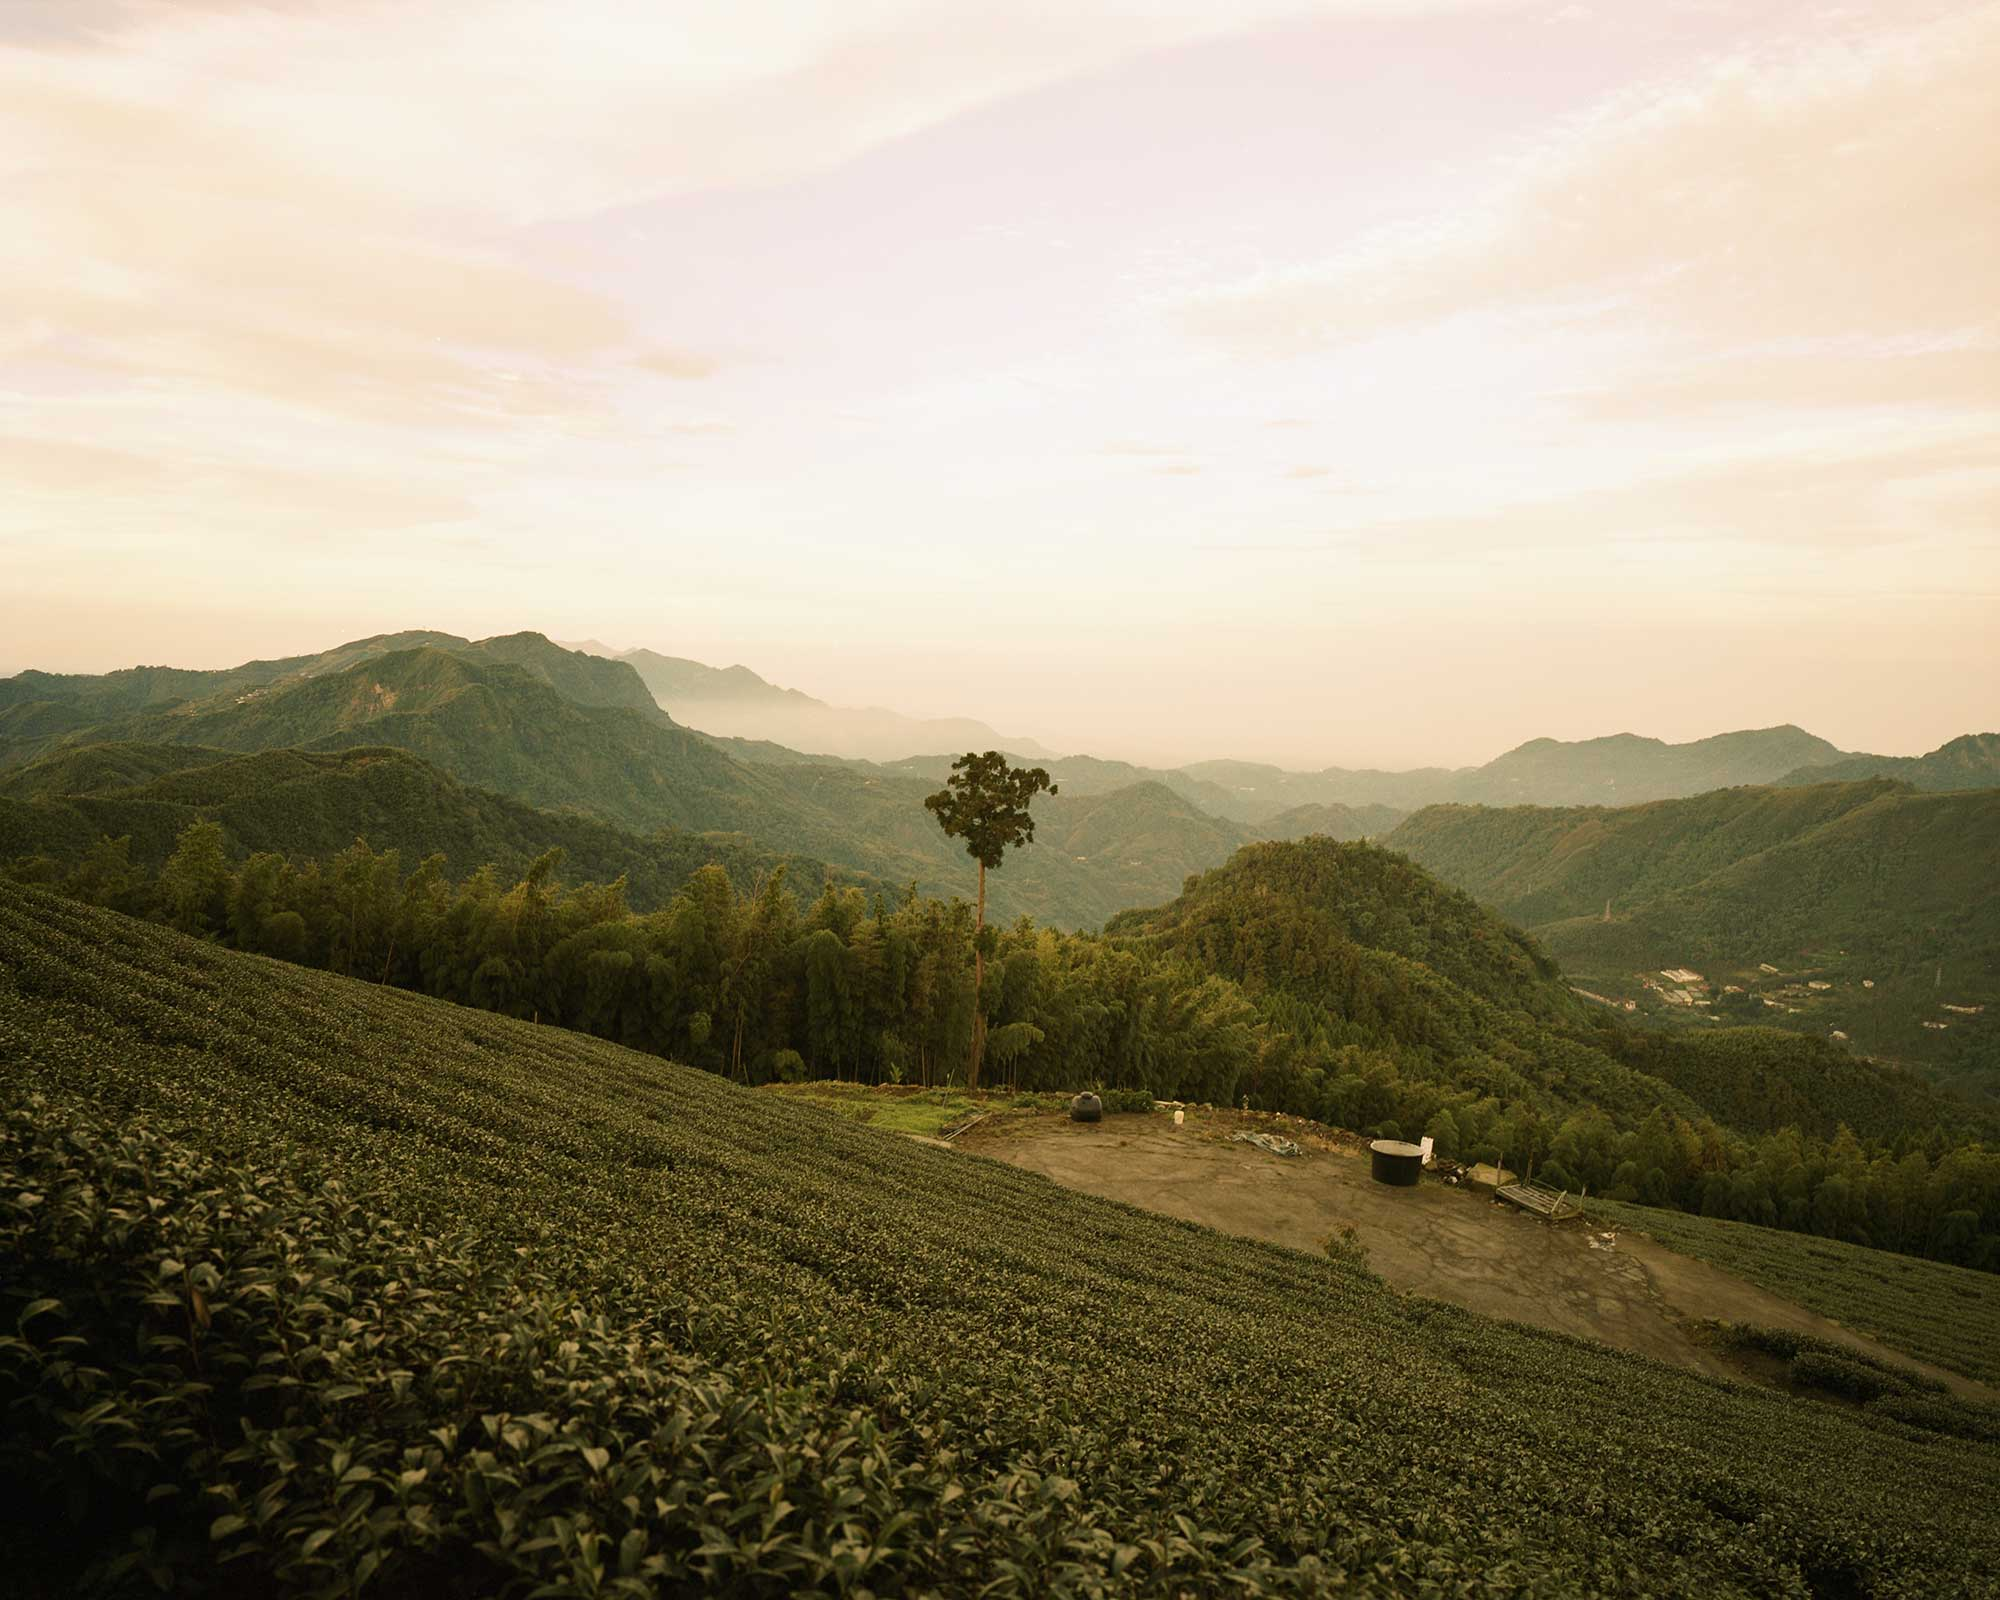 Image of Taiwan Tea Plantation